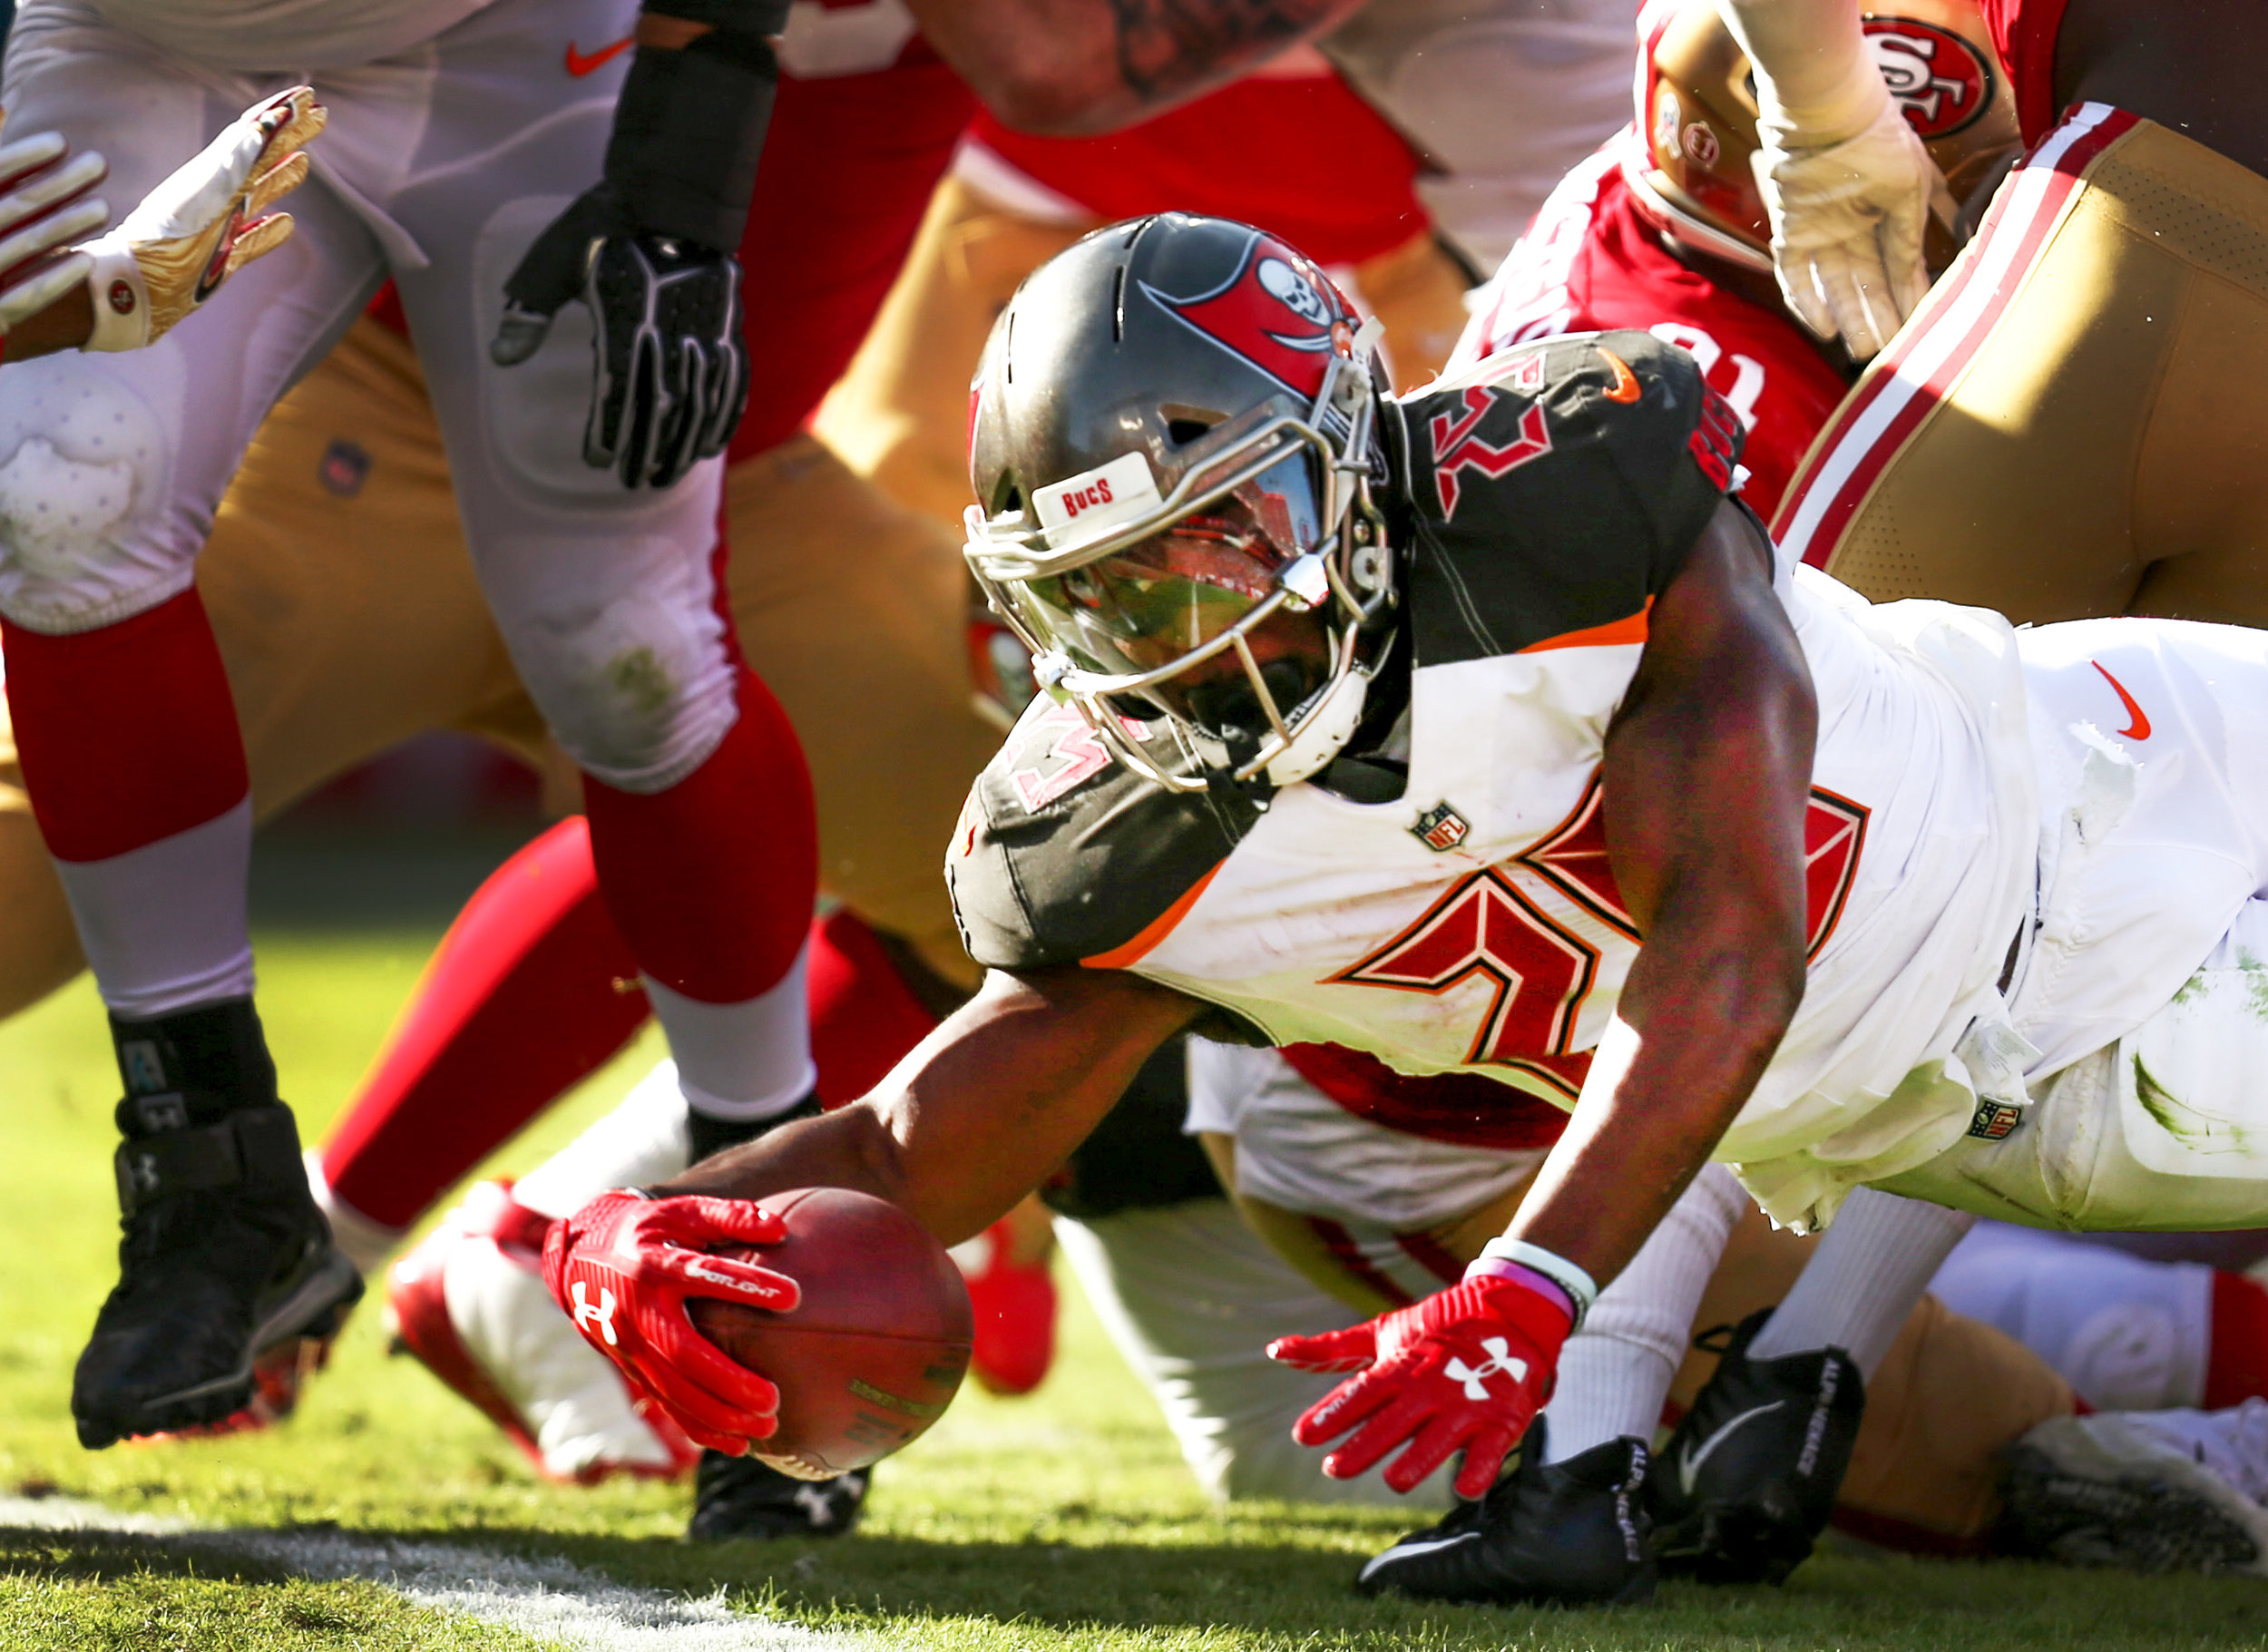 Tampa Bay Buccaneers running back Peyton Barber (25) pushes through the defense to land a touchdown during the third quarter of the Tampa Bay Buccaneers game against the San Francisco 49ers on November 25, 2018 at Raymond James Stadium in Tampa, Fla.